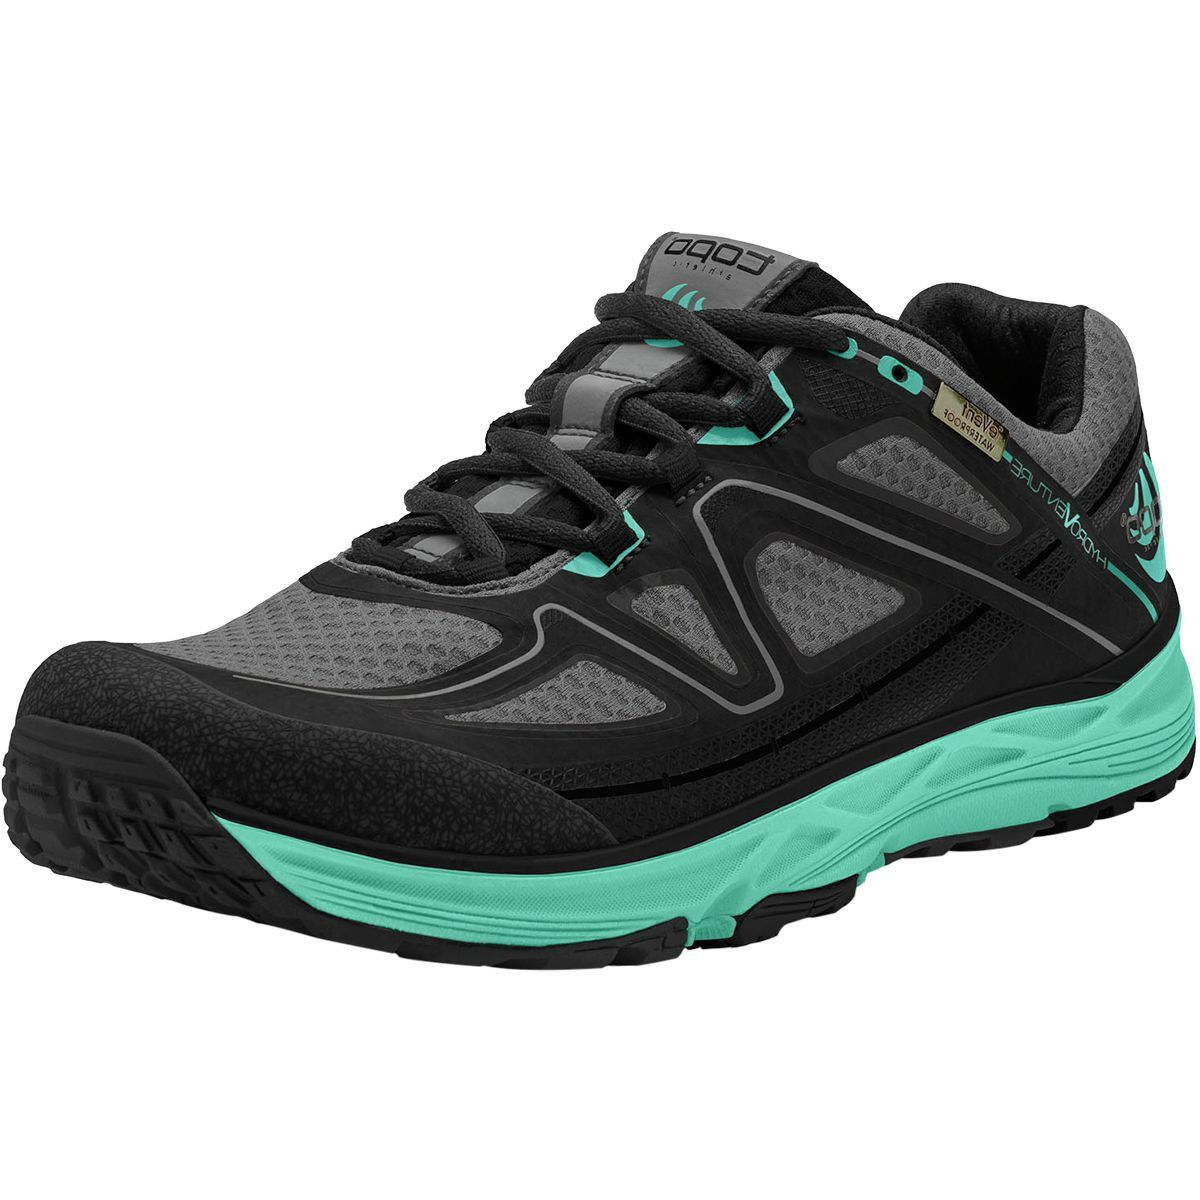 Topo Athletic Hydroventure Trail Running Shoe - Women's